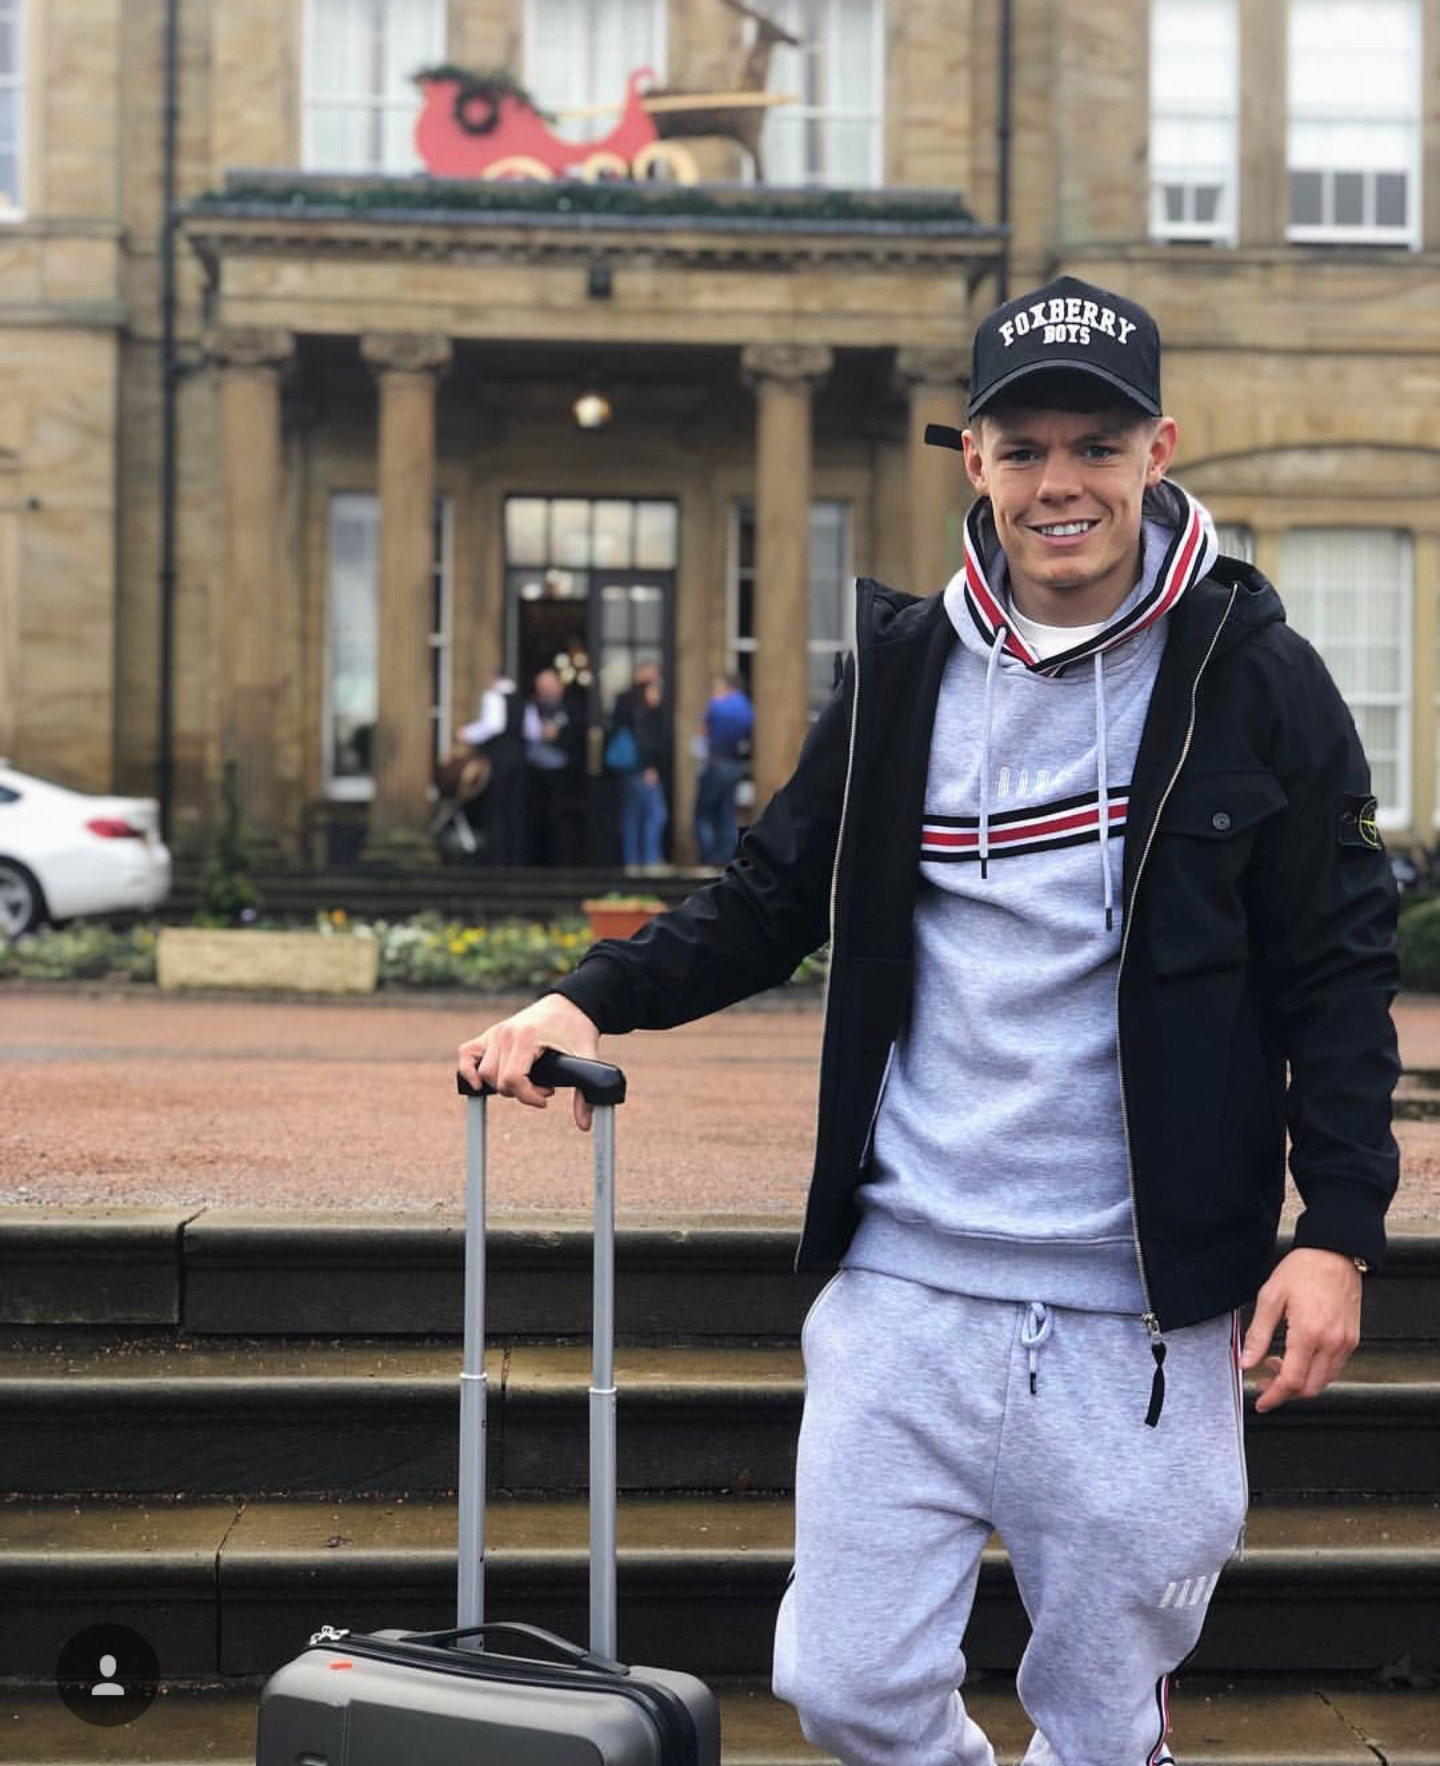 Charlie Edwards leaves Oulton Hall spa wearing our Sports Luxe Baseball cap looking relaxed ahead of his fight against current WBC Flyweight Champion Cristofer Rosales this Saturday 22nd Dec at the London O2 arena #ANDTHENEW #gopak